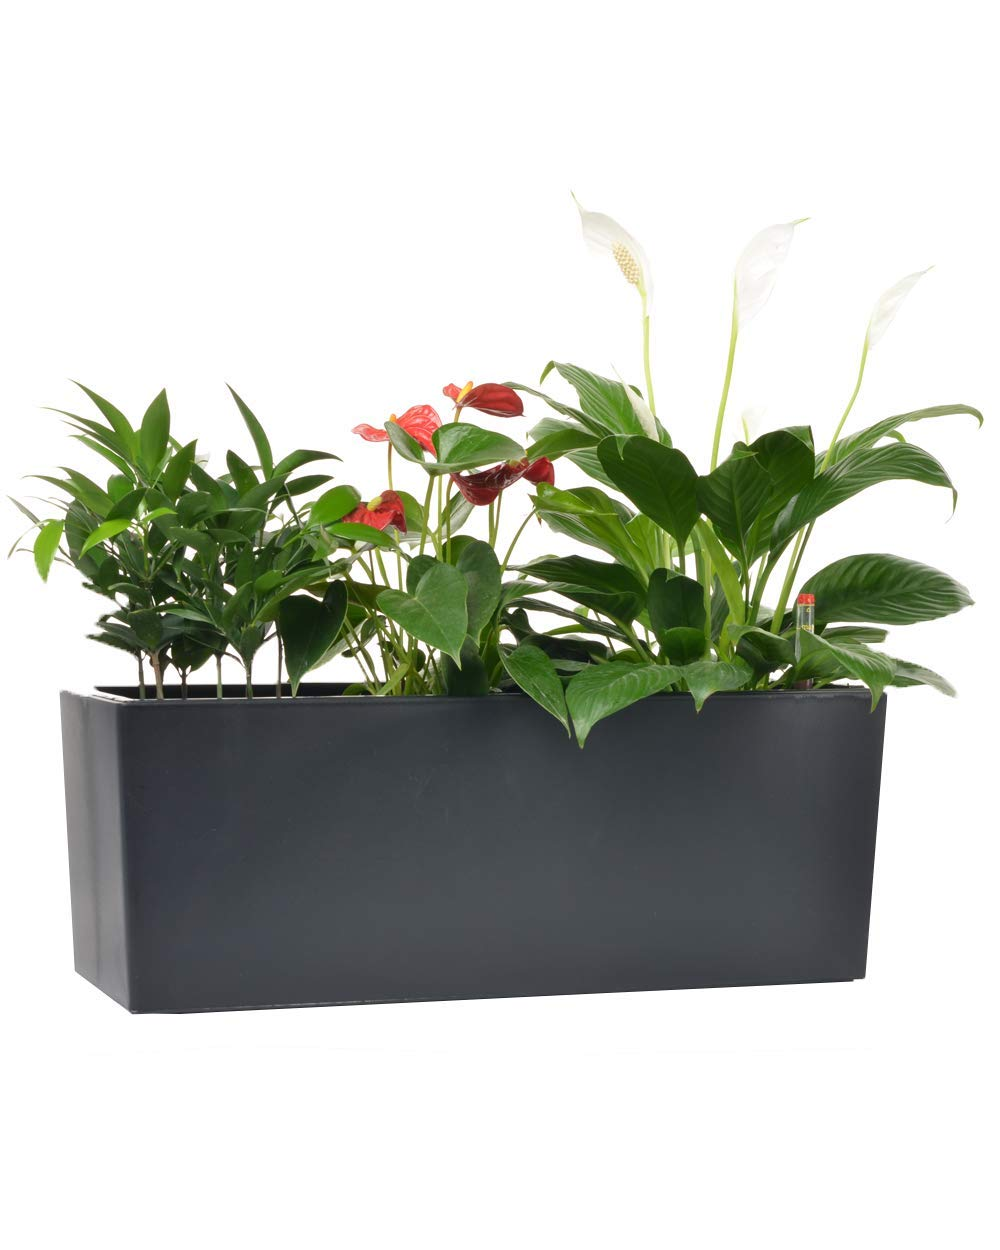 Self Watering Planter Pots with 10 Quarts Coco Soil 7.5 x 20 inch Indoor Outdoor Home Garden Herb Flower Pot for Hanging Railing Balcony Tabletop (1, Black(7.5''x 20''))